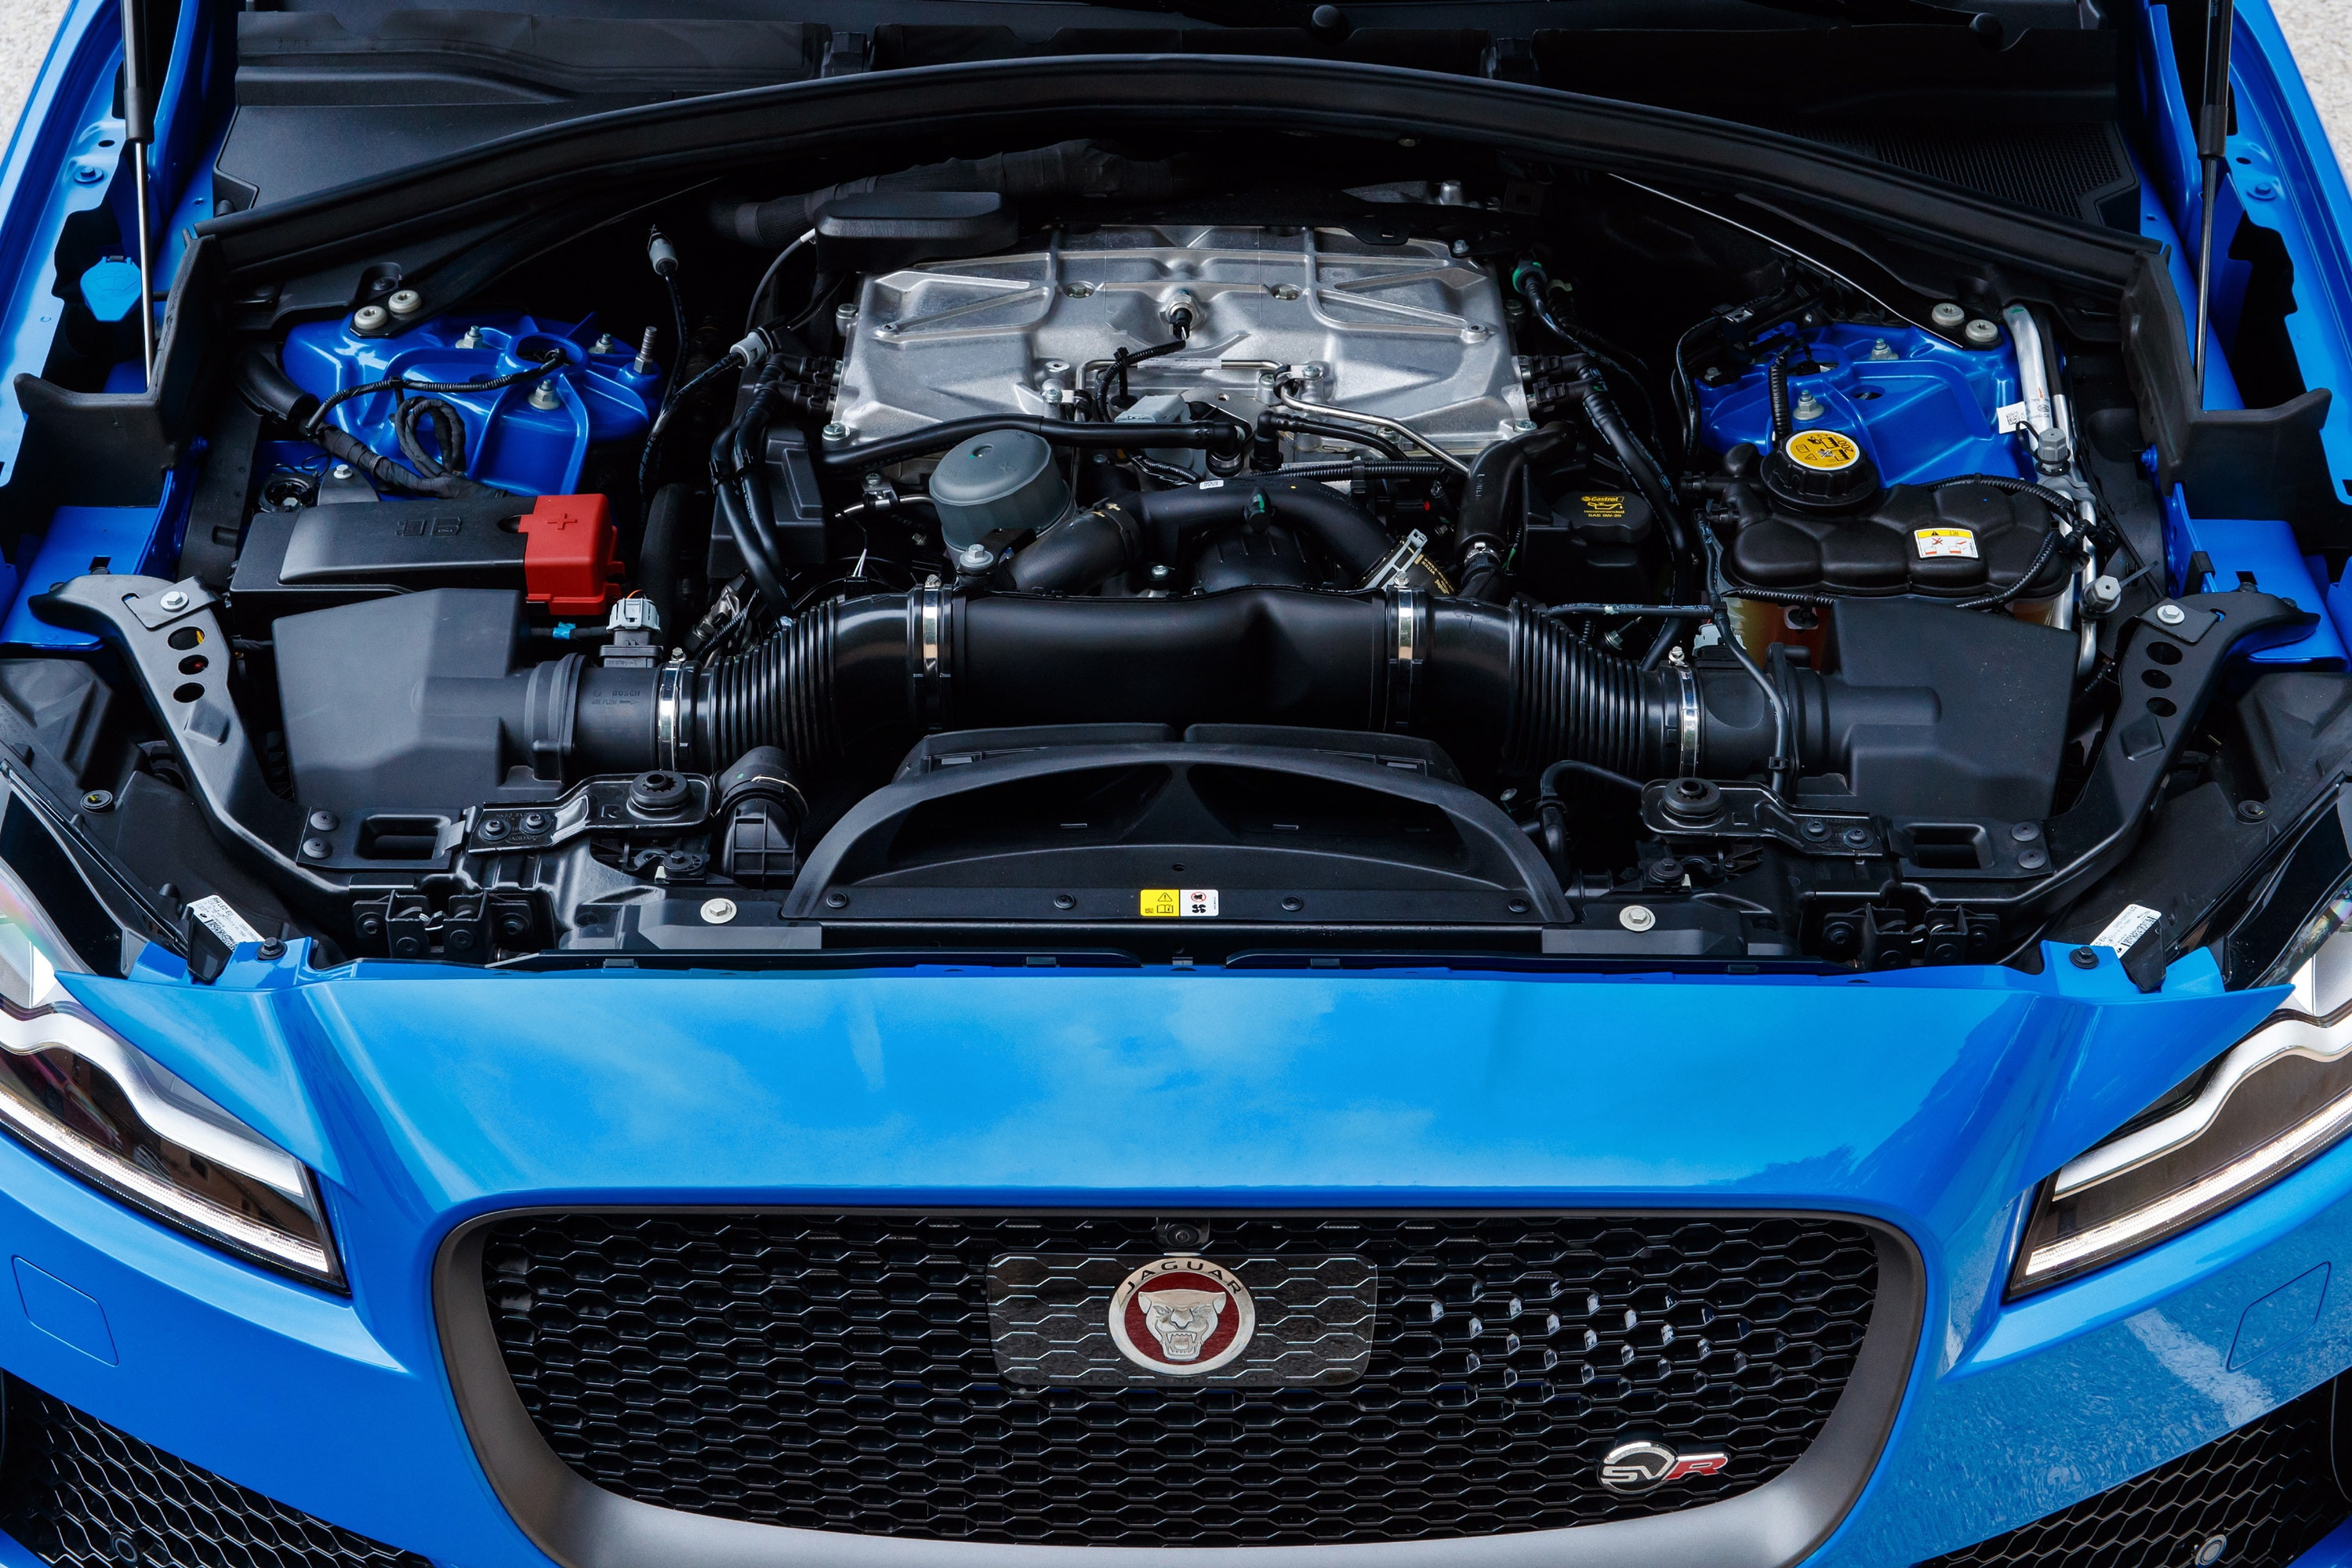 Under the bonnet of the Jaguar F-Pace SVR